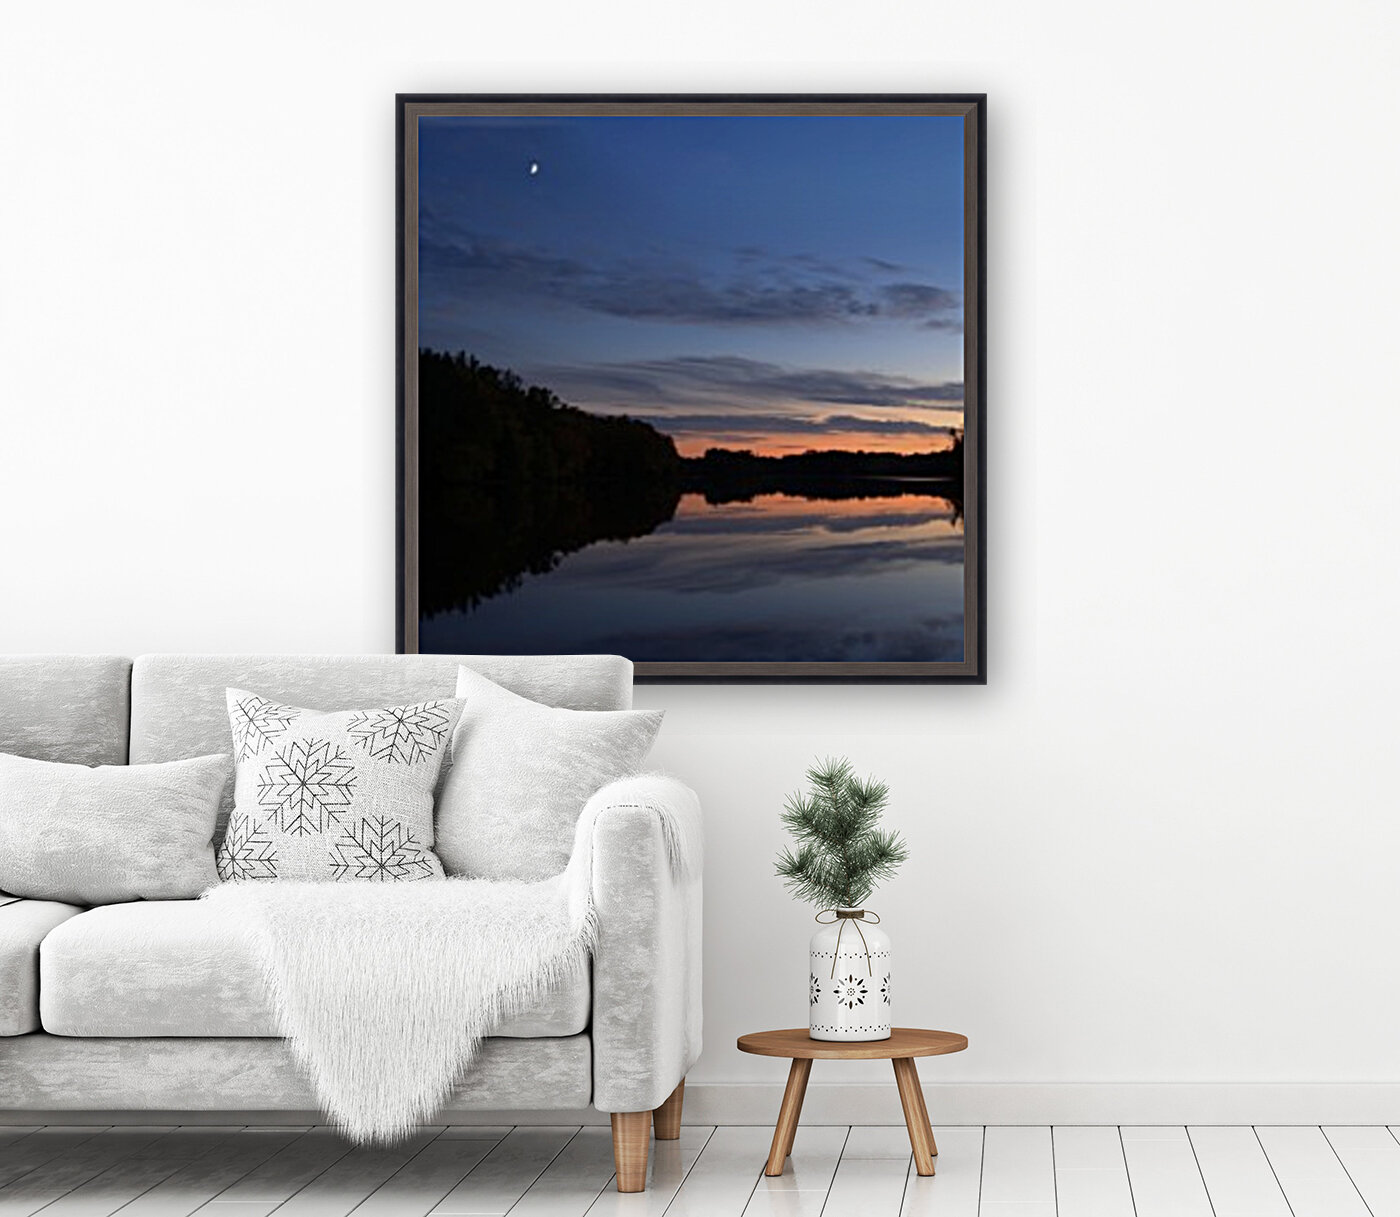 Heure bleue with Floating Frame